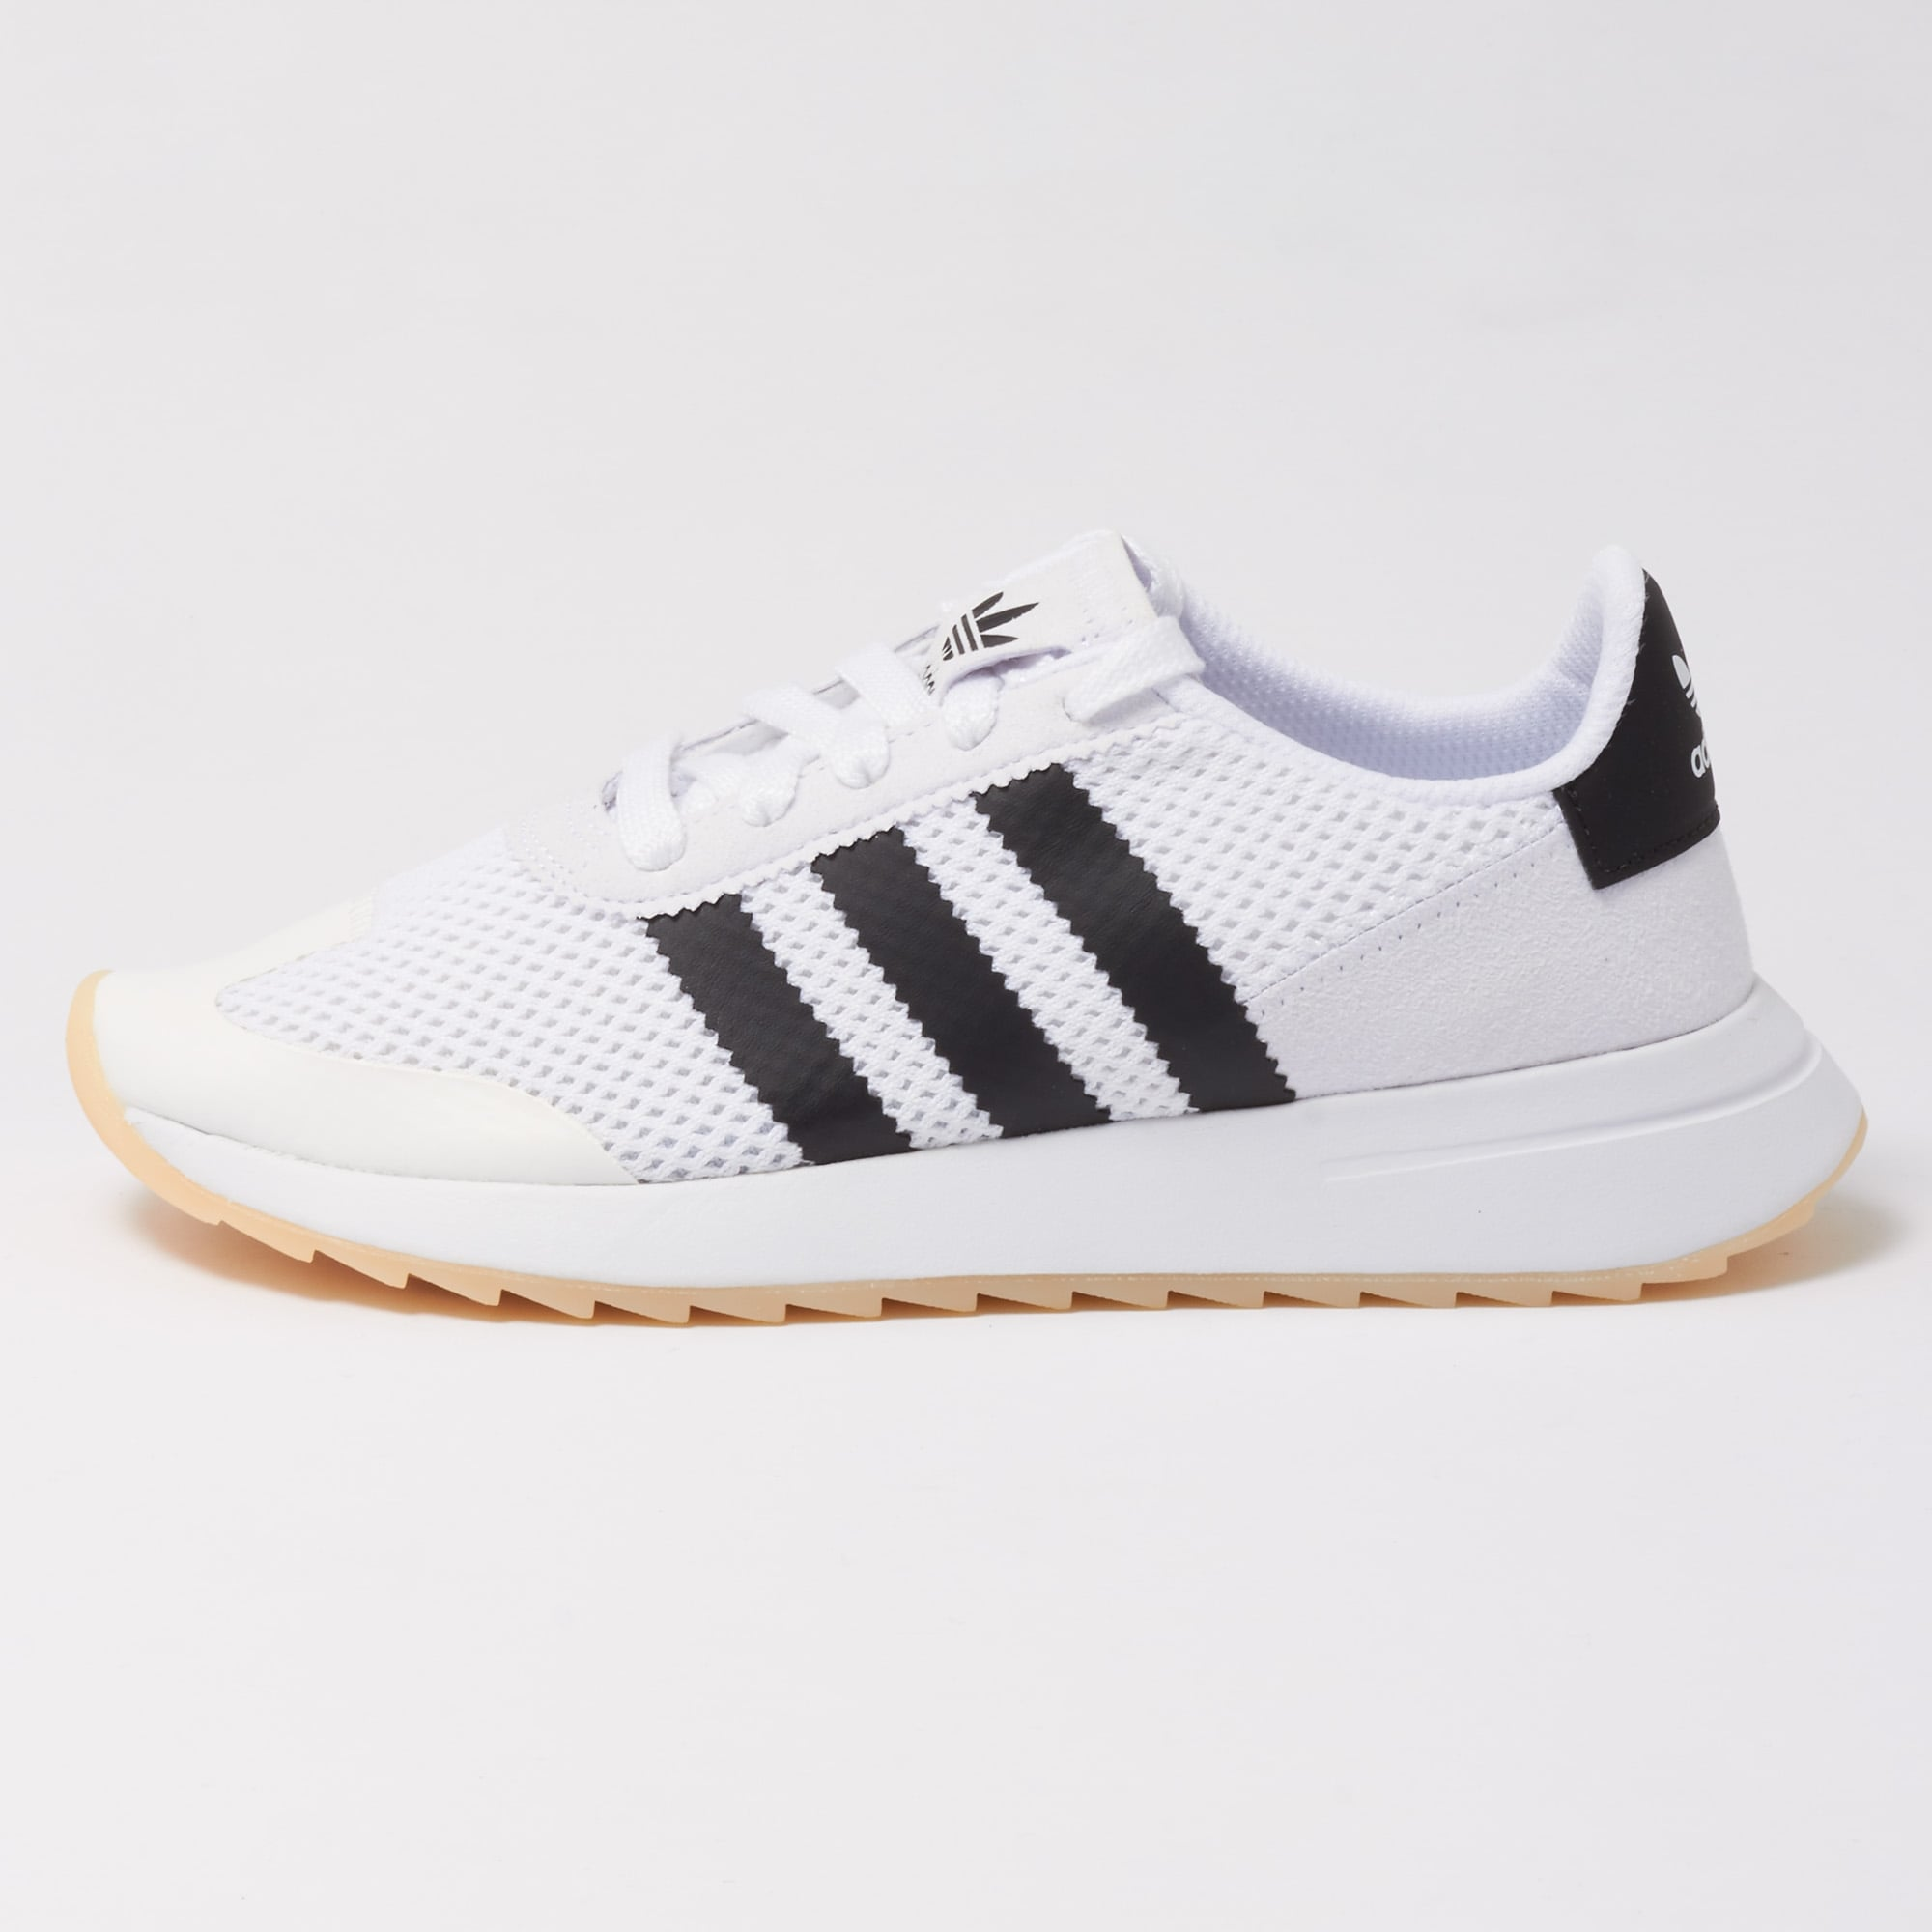 factory 2019 best sell clear and distinctive adidas Originals Womens FLB Trainers - Footwear White & Core Black